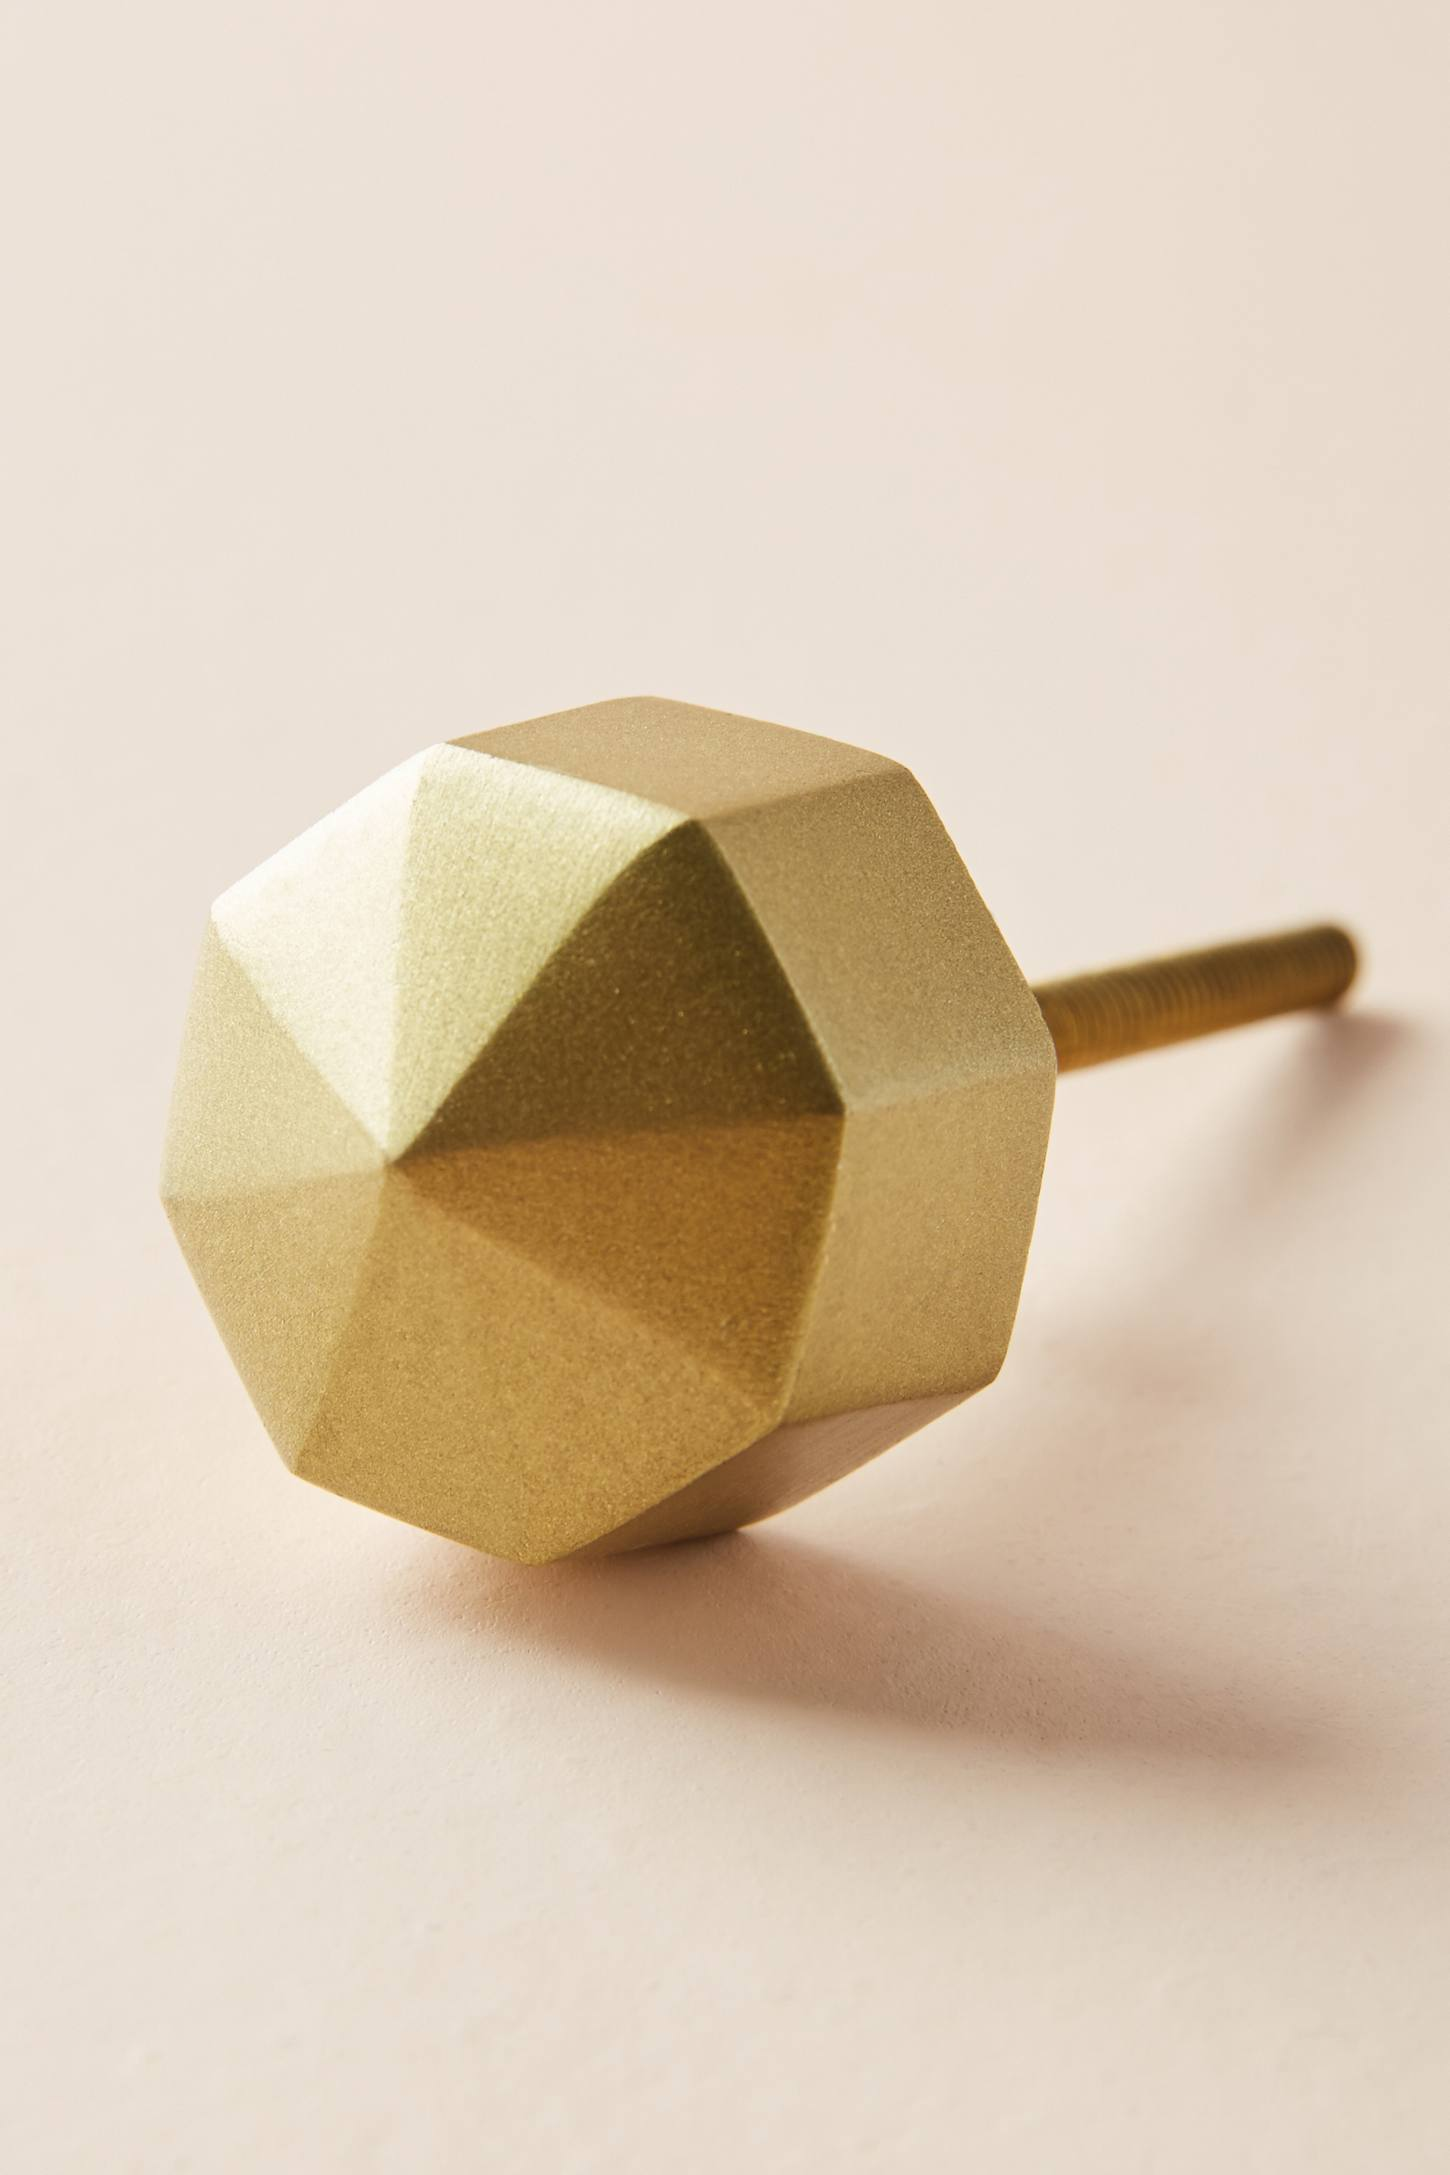 Slide View: 3: Faceted Ory Knob